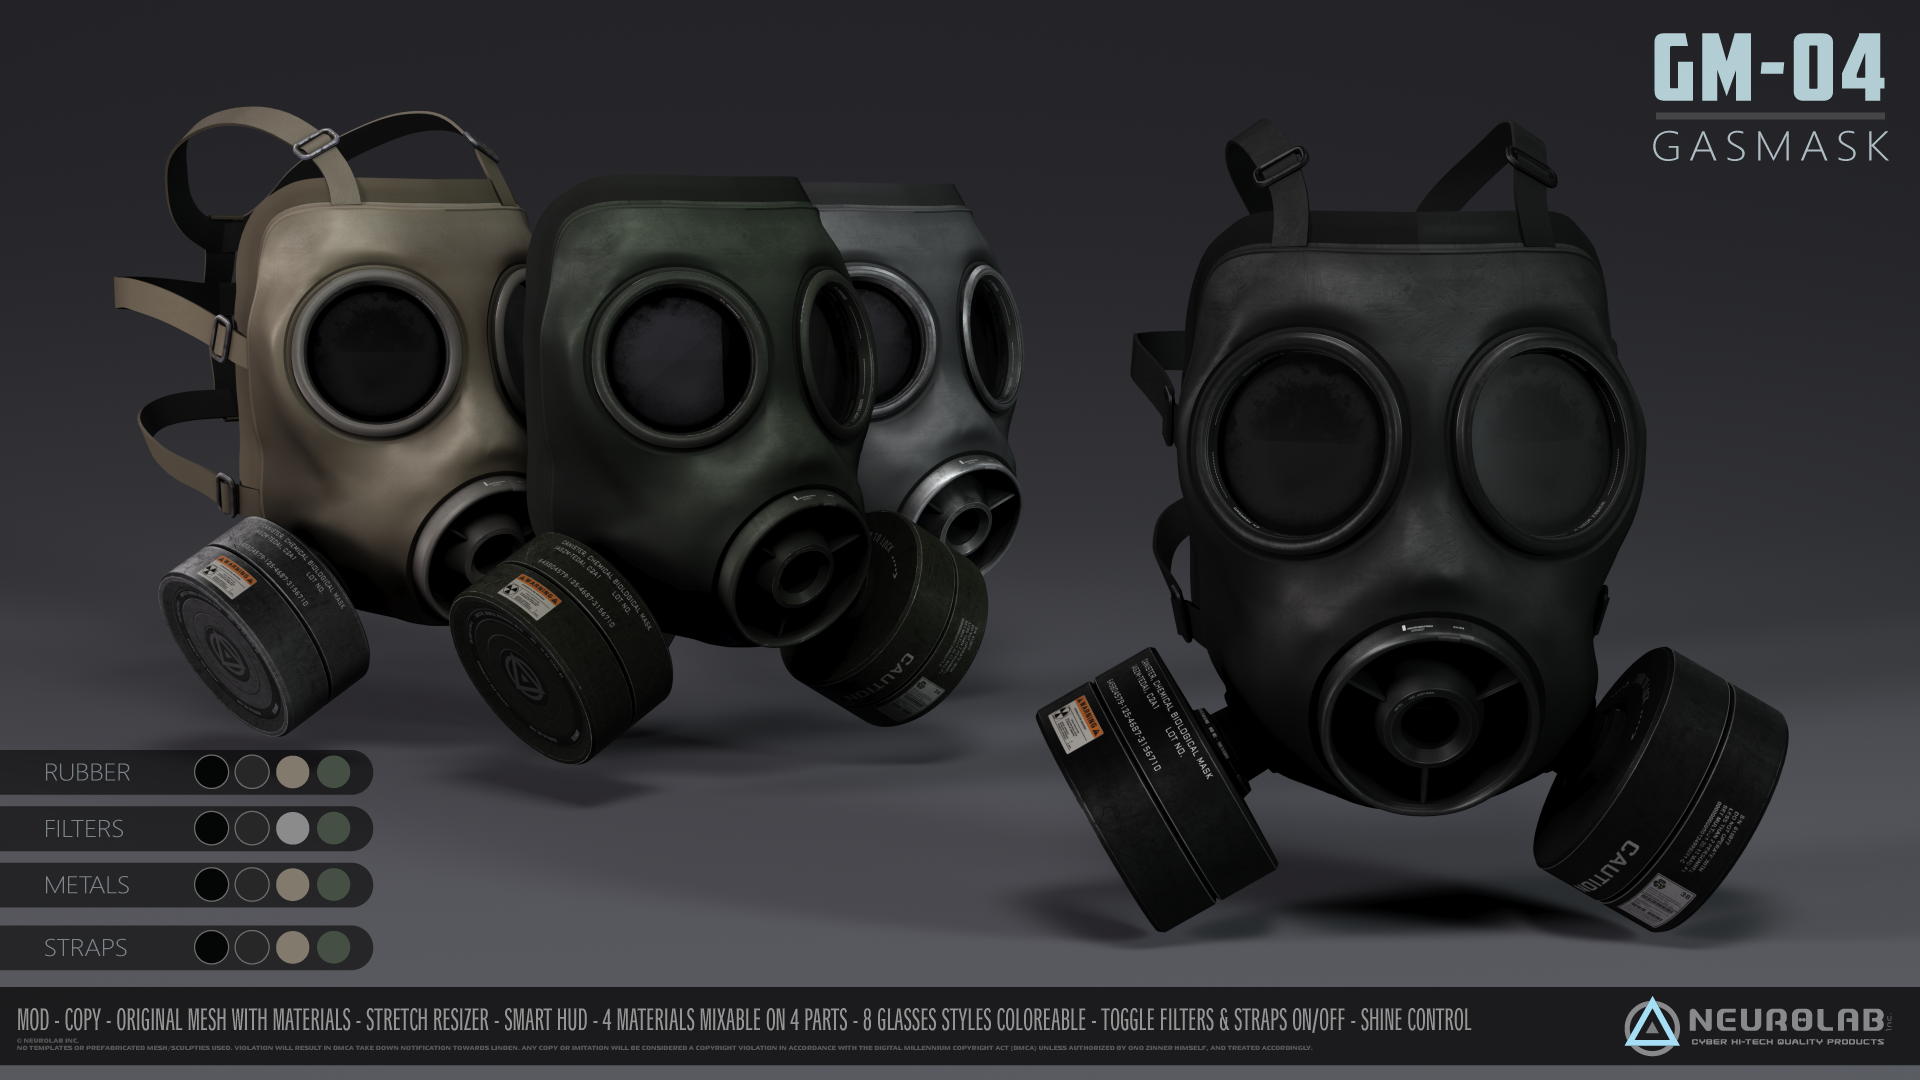 GM-04 GasMask (Classic FatPack) *NEW*